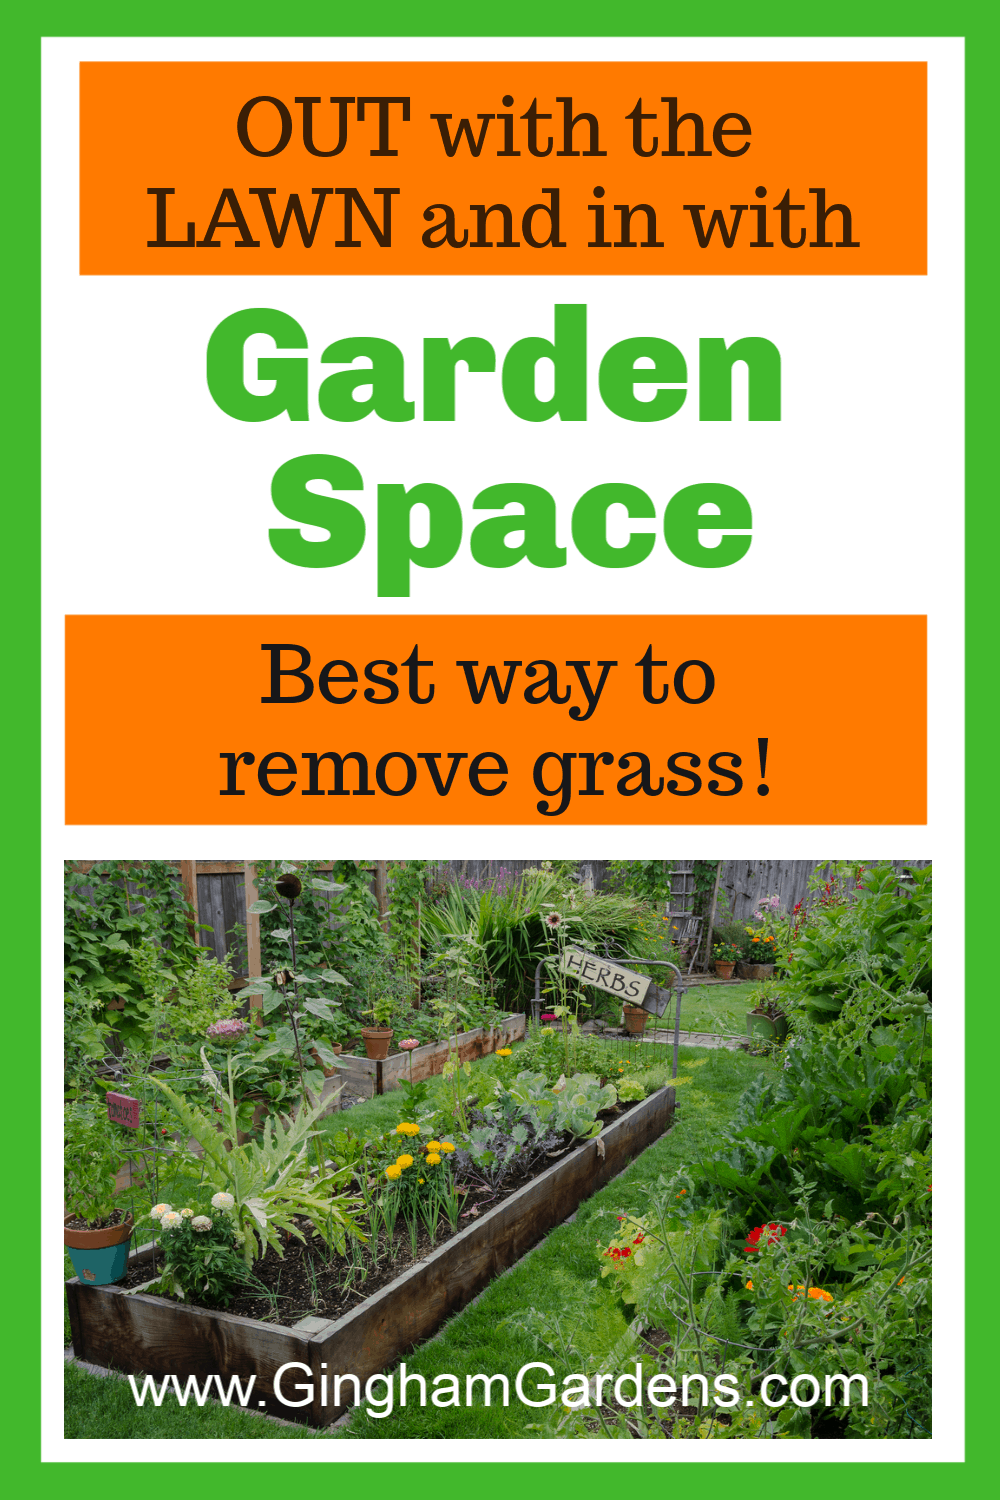 Image of garden beds with text overlay out with the lawn and in with Garden Space